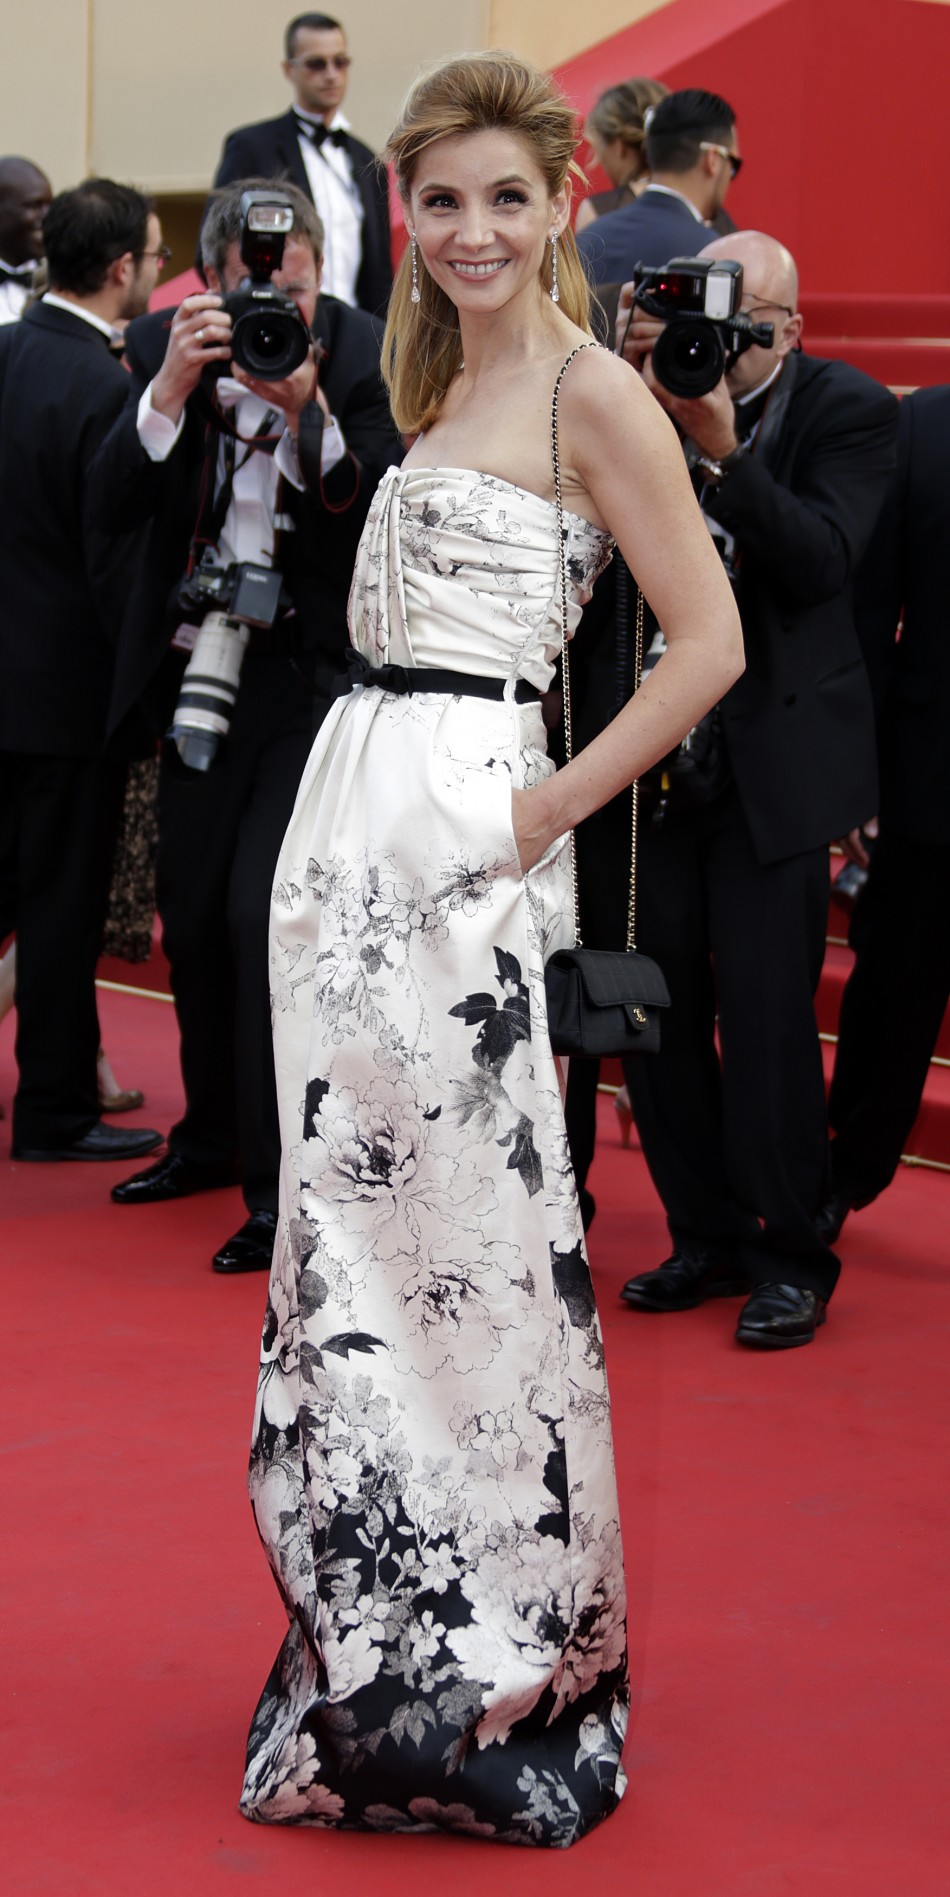 Actress Coureau arrives on the red carpet for the screeing of the film De rouille et d'os at the 65th Cannes Film Festival